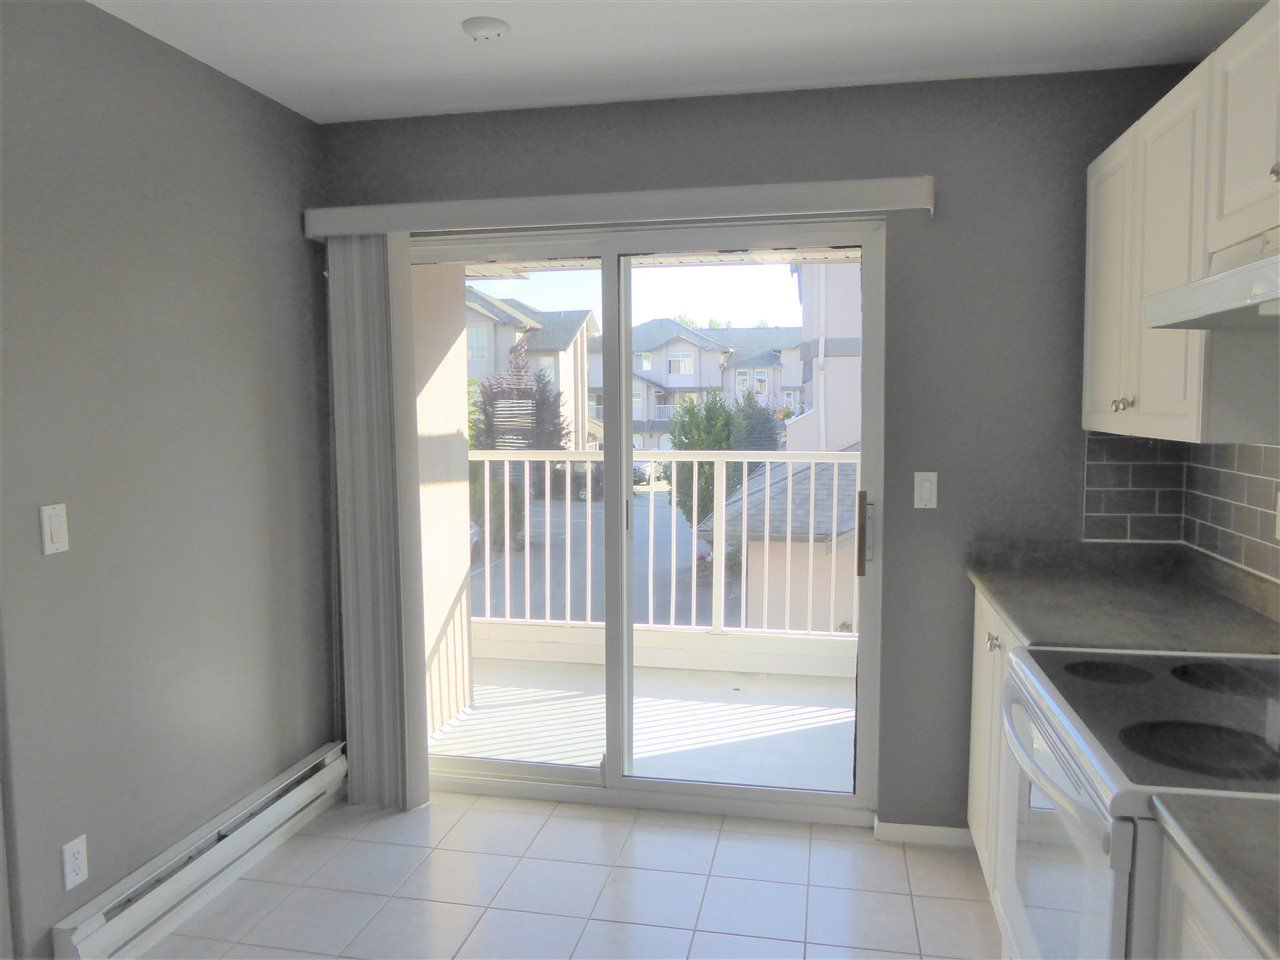 """Photo 5: Photos: 7 2538 PITT RIVER Road in Port Coquitlam: Mary Hill Townhouse for sale in """"RIVER COURT"""" : MLS®# R2392778"""